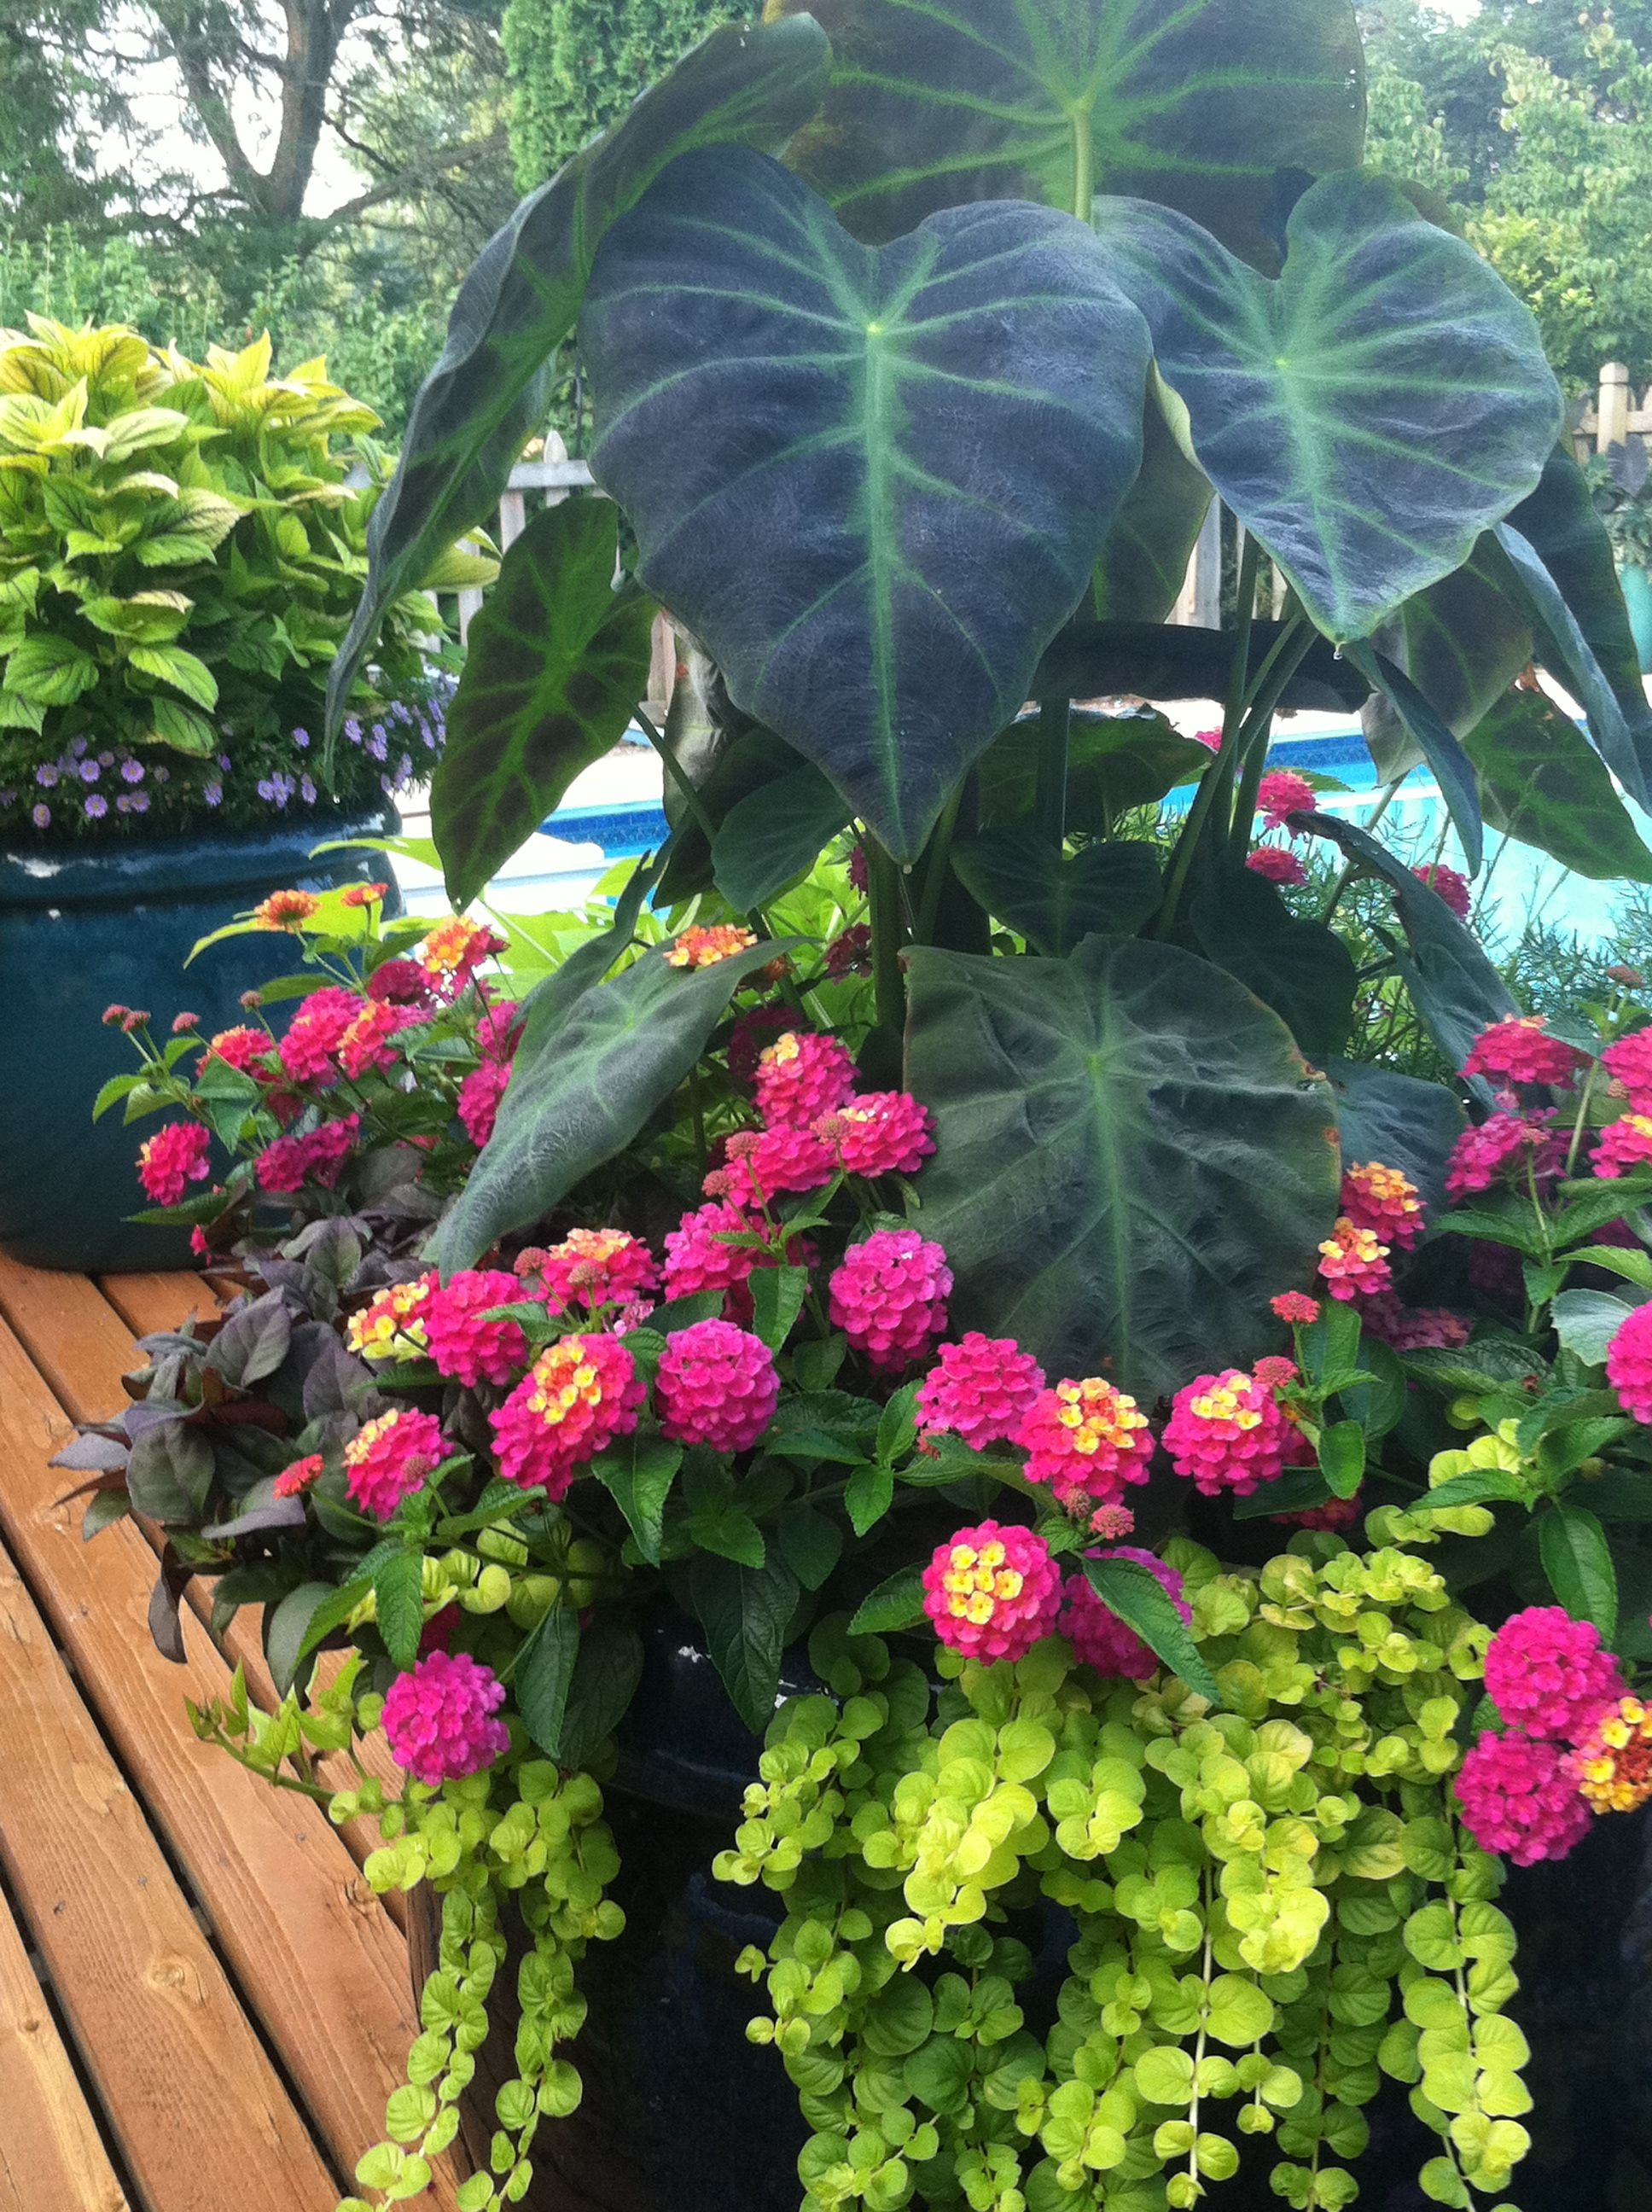 Lantana Kopen Colocasia Lantana And Lysimachia Makes A Beautiful Container For